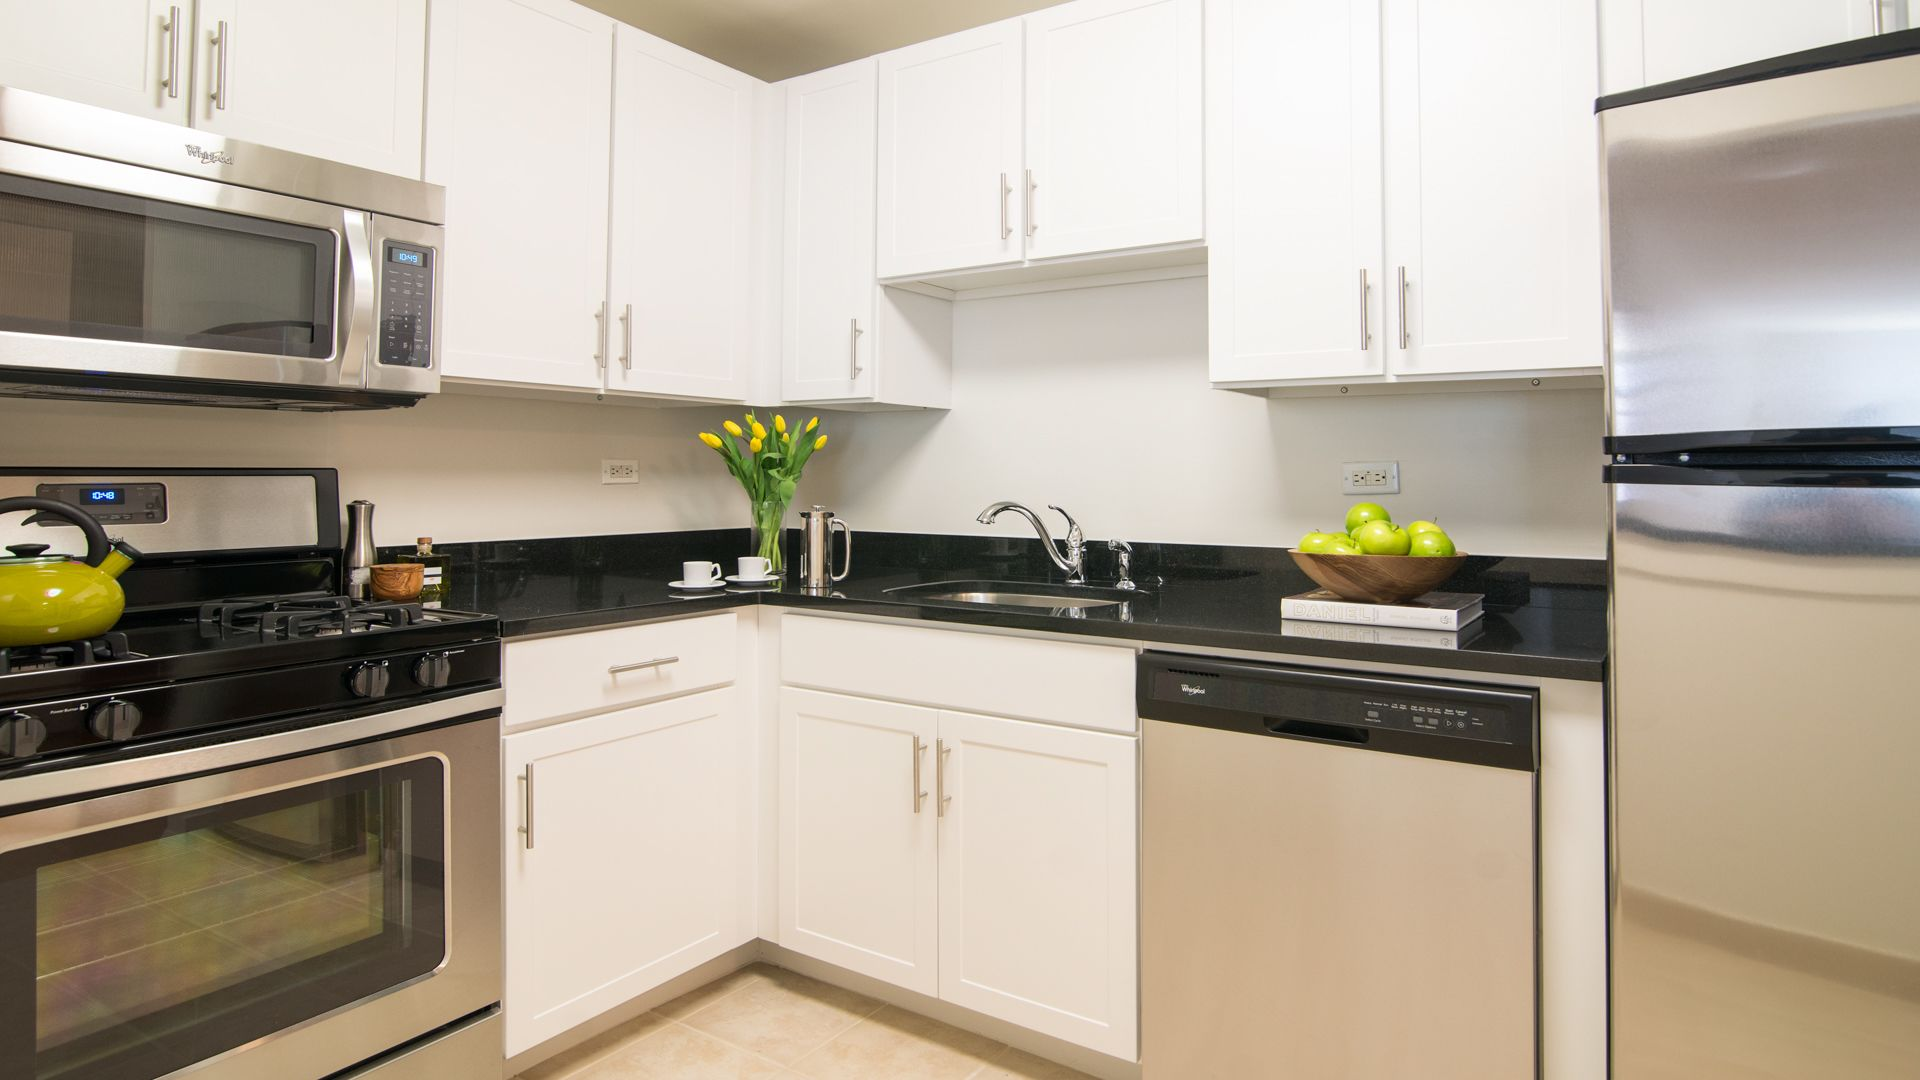 West 96th Apartments - Kitchen